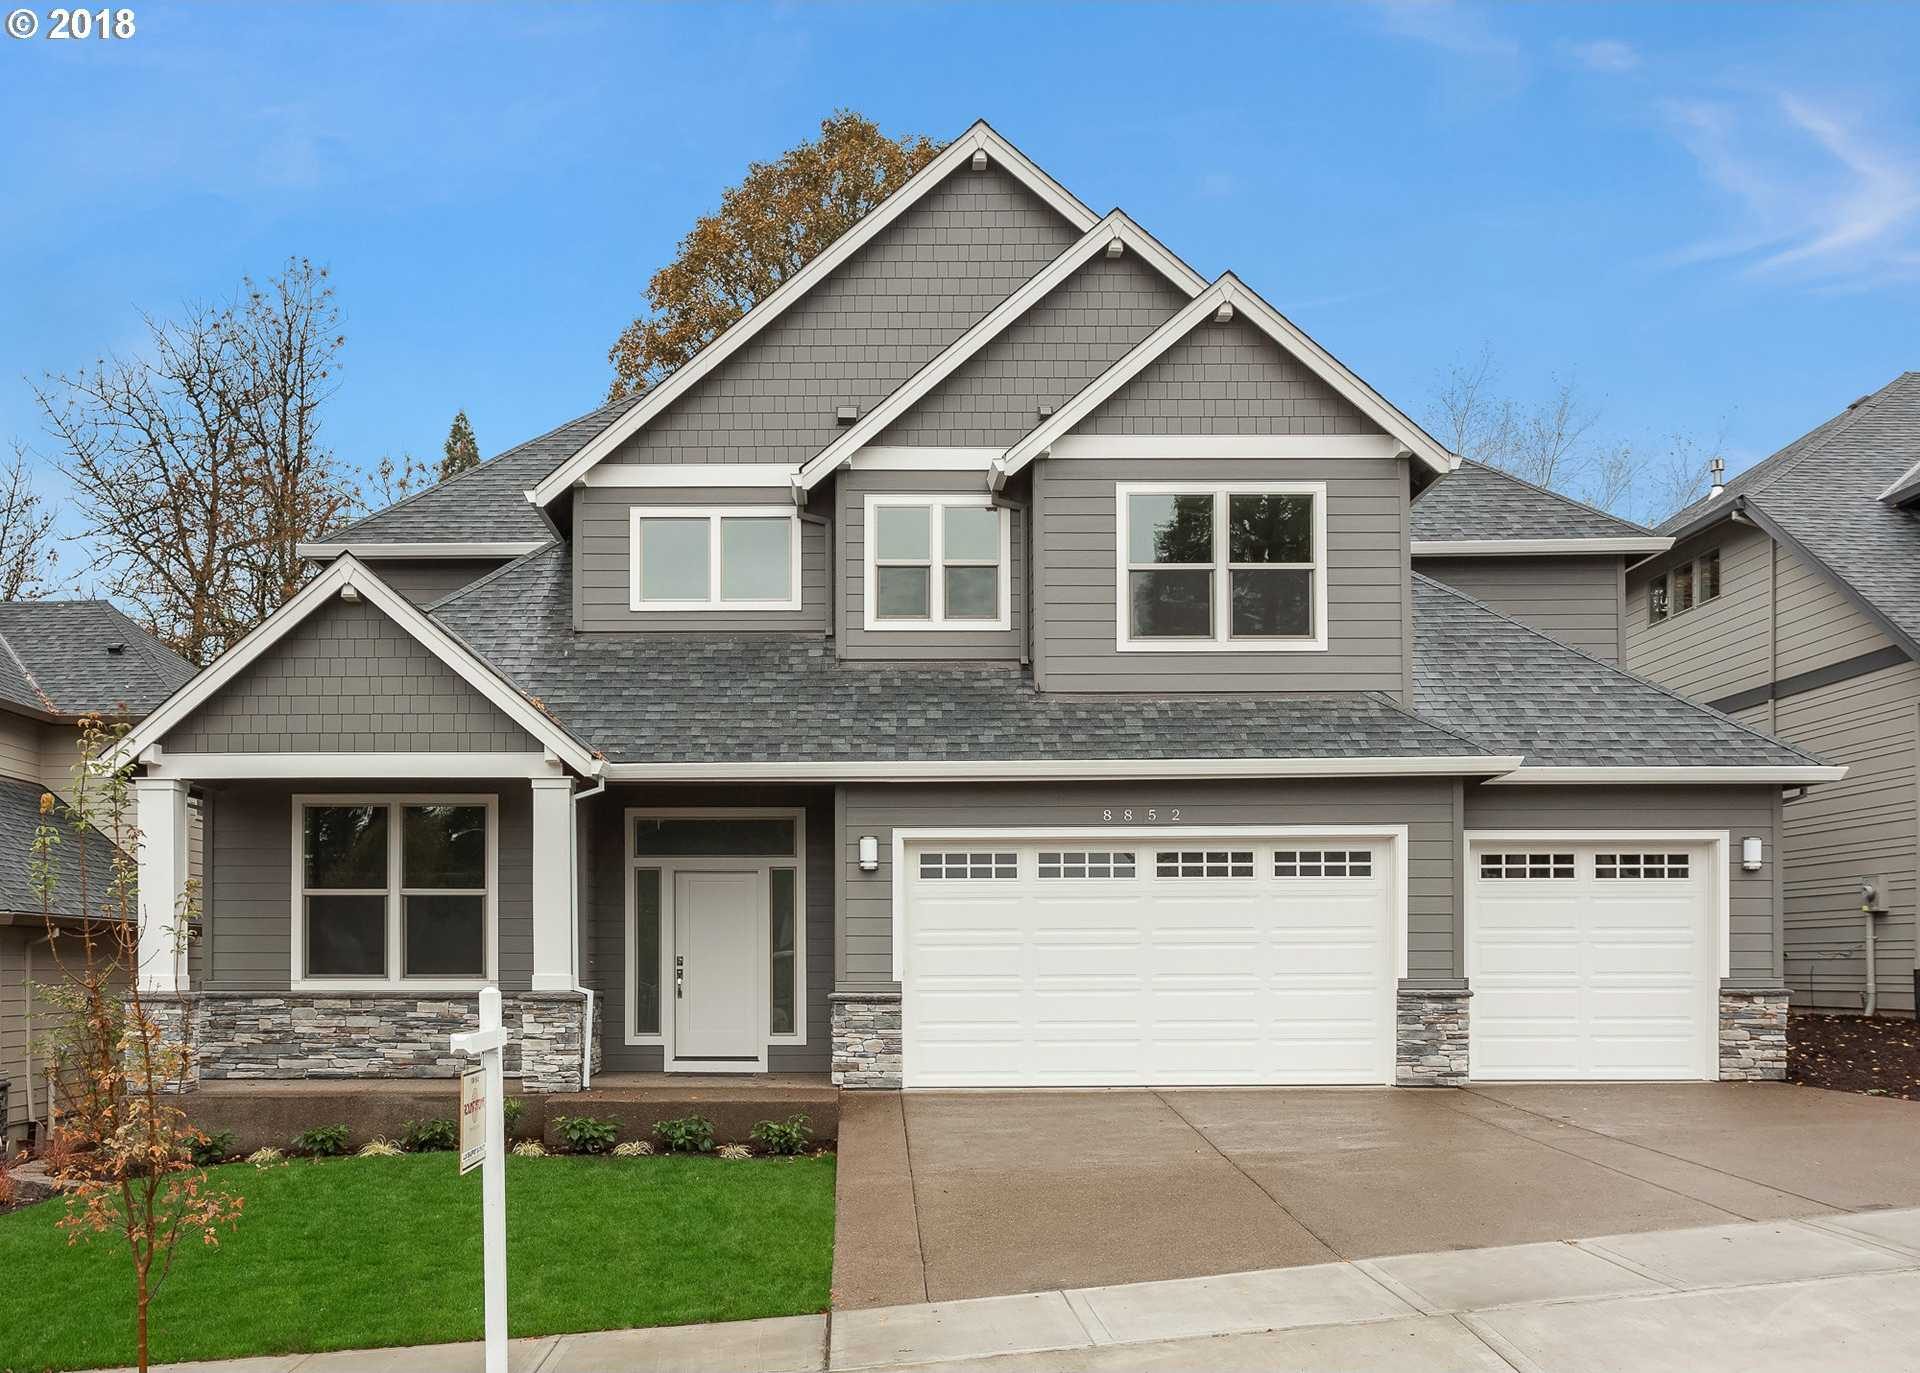 $805,000 - 4Br/3Ba -  for Sale in Tigard